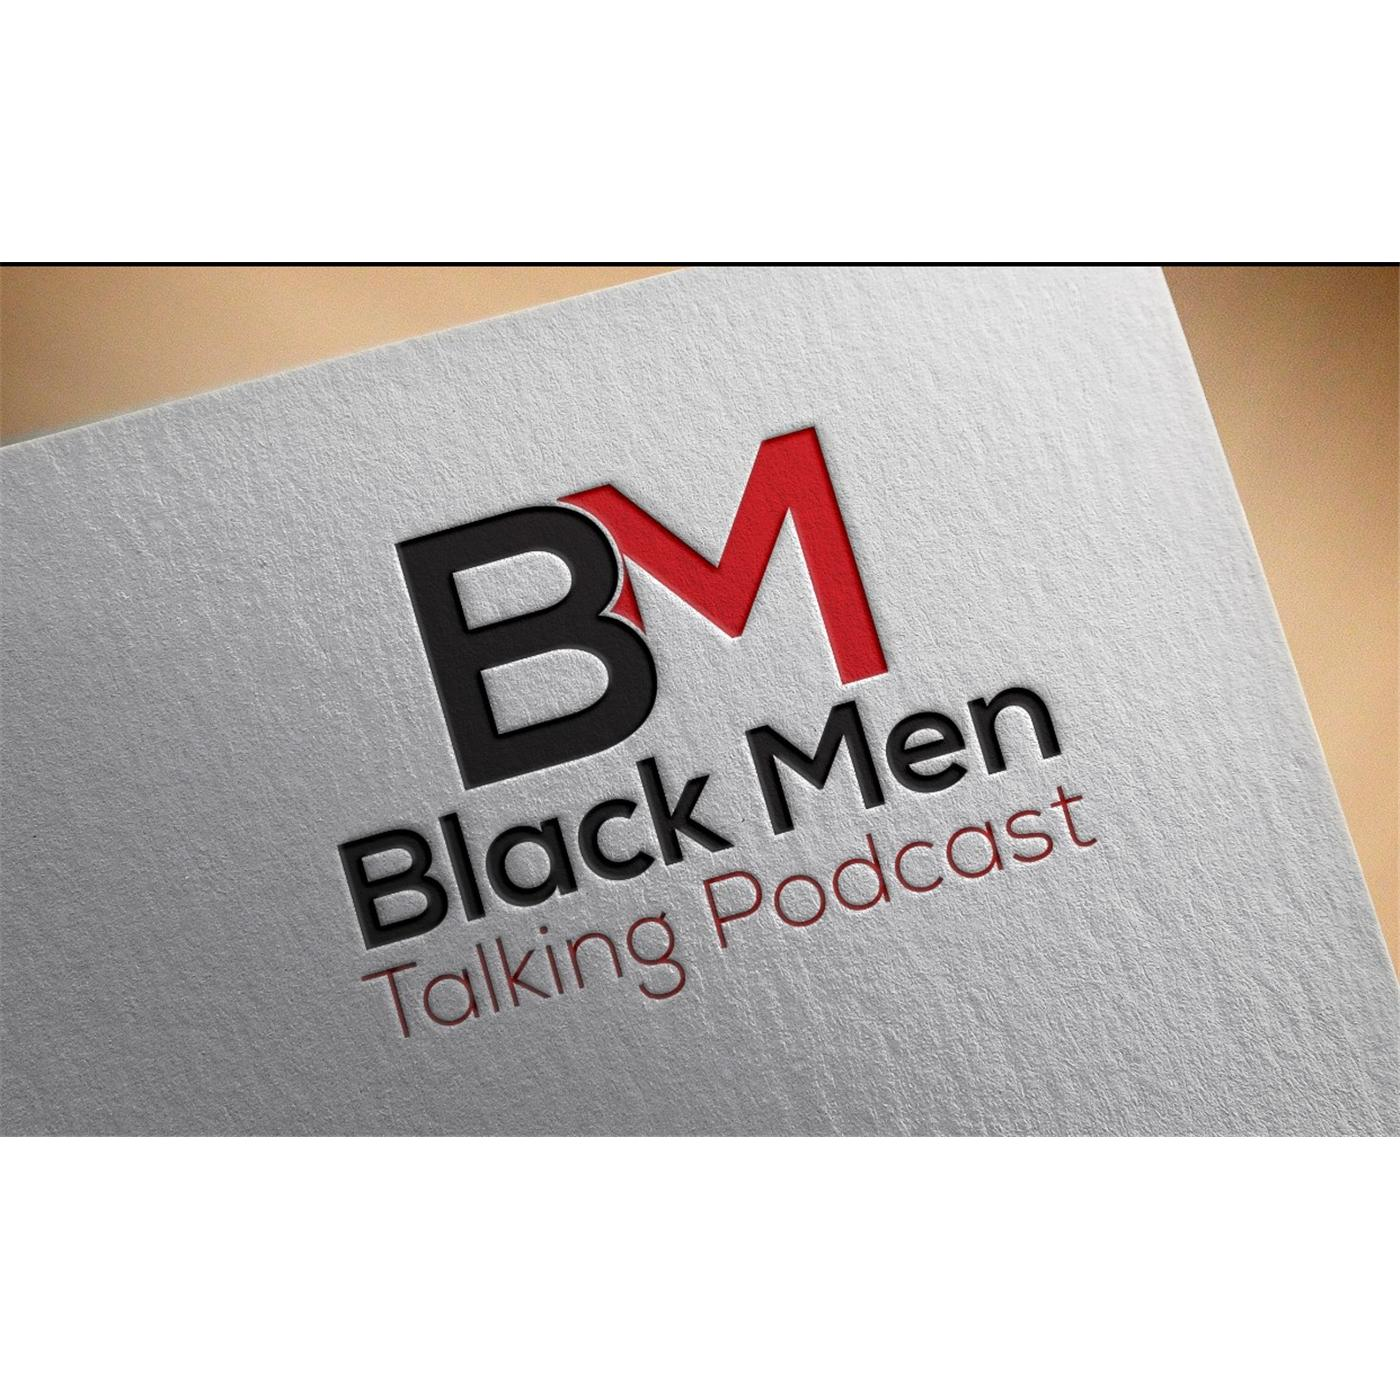 The Black Men Talking  Podcast